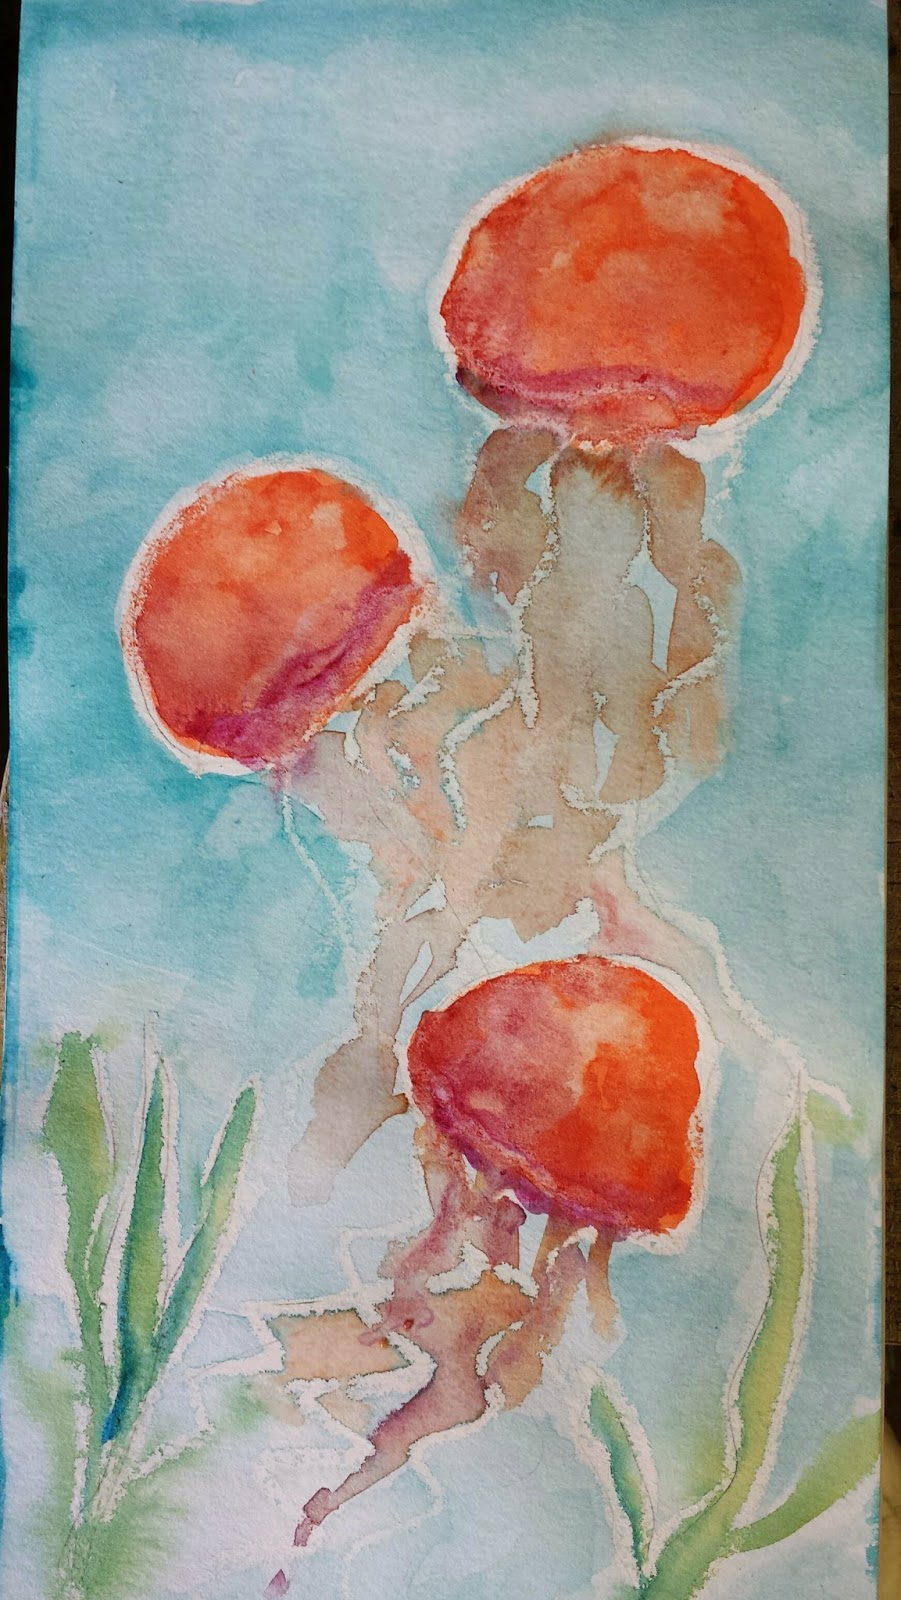 Qor Water Color Paint